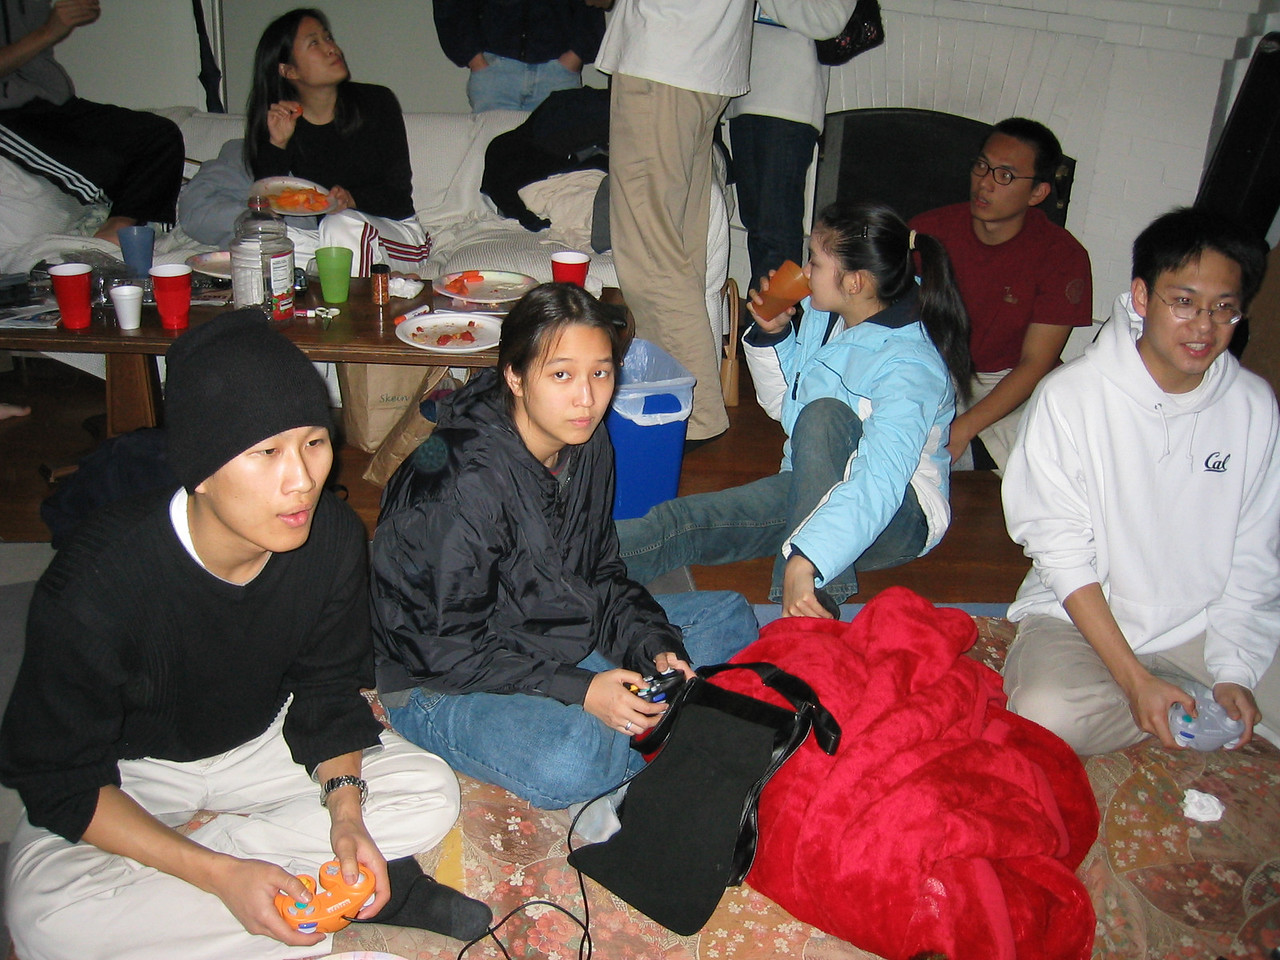 2002 12 14 Saturday - Group pic of gamers